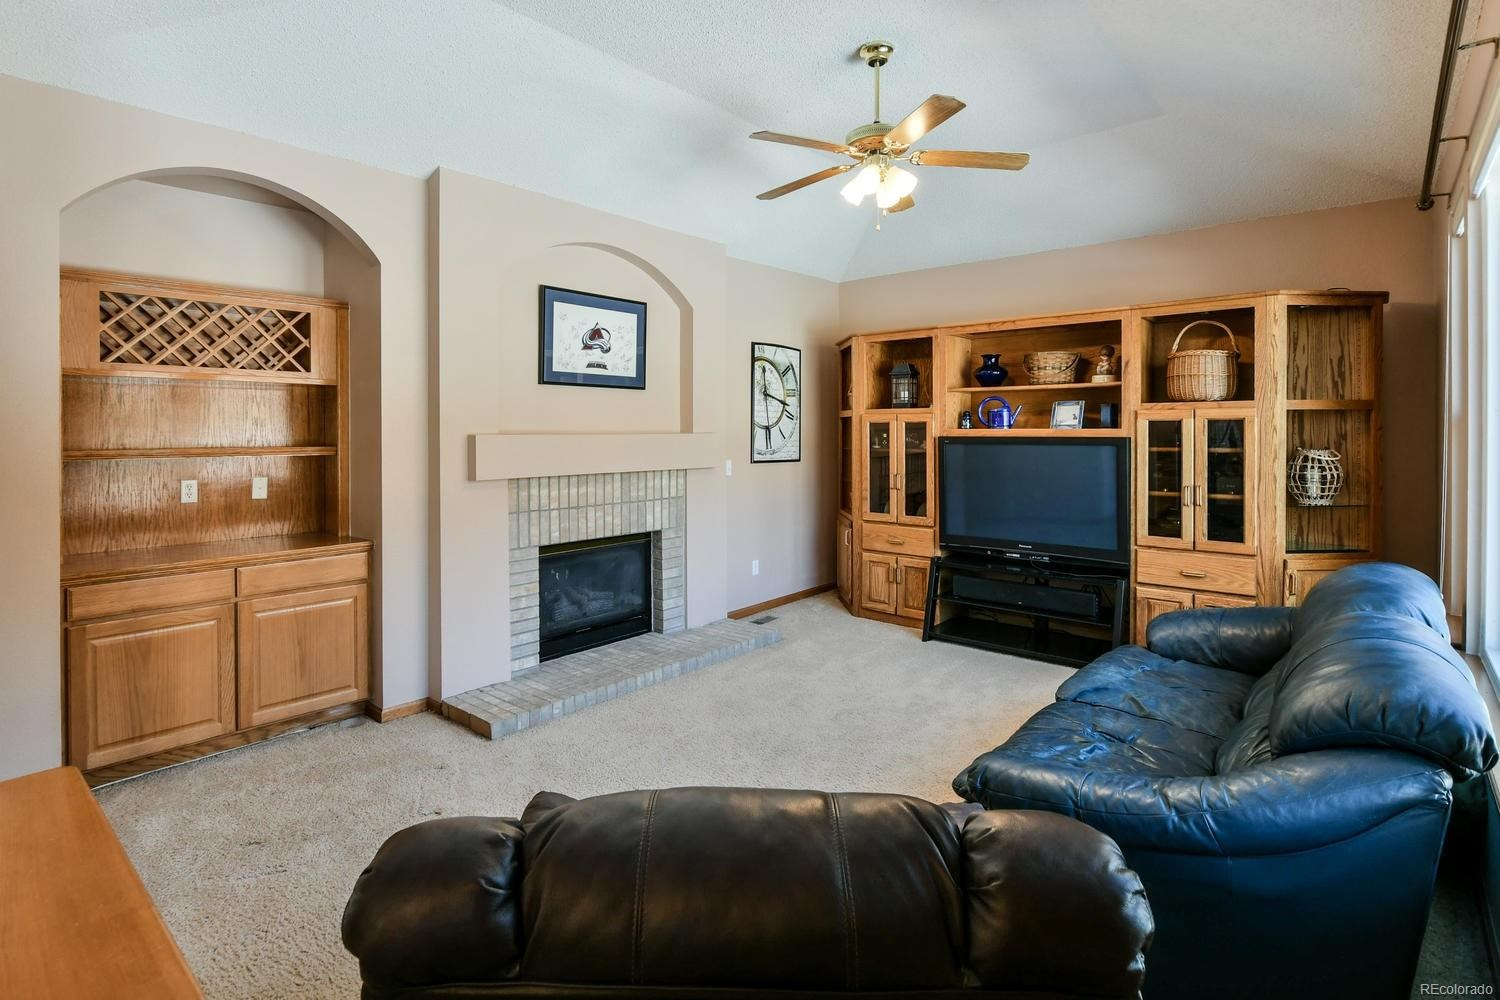 MLS# 8309835 - 14 - 1205 Imperial Way, Superior, CO 80027